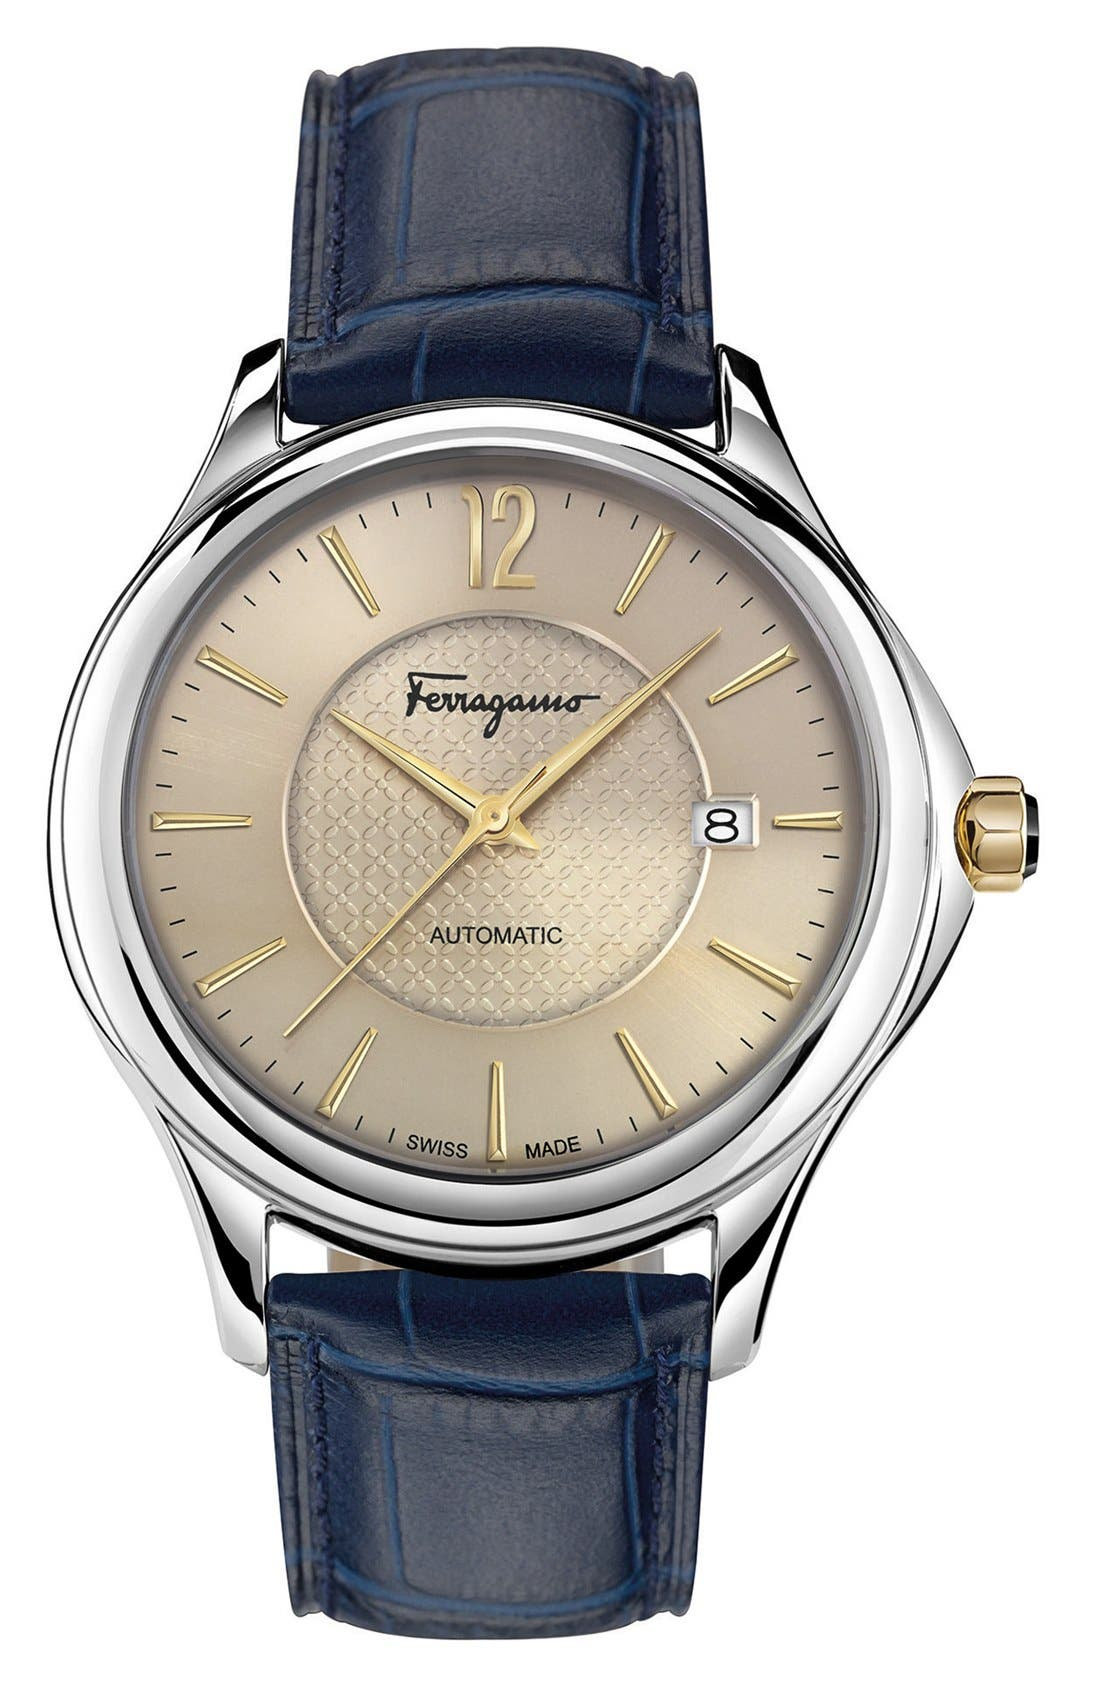 Salvatore Ferragamo 'Time' Automatic Leather Strap Watch, 41mm